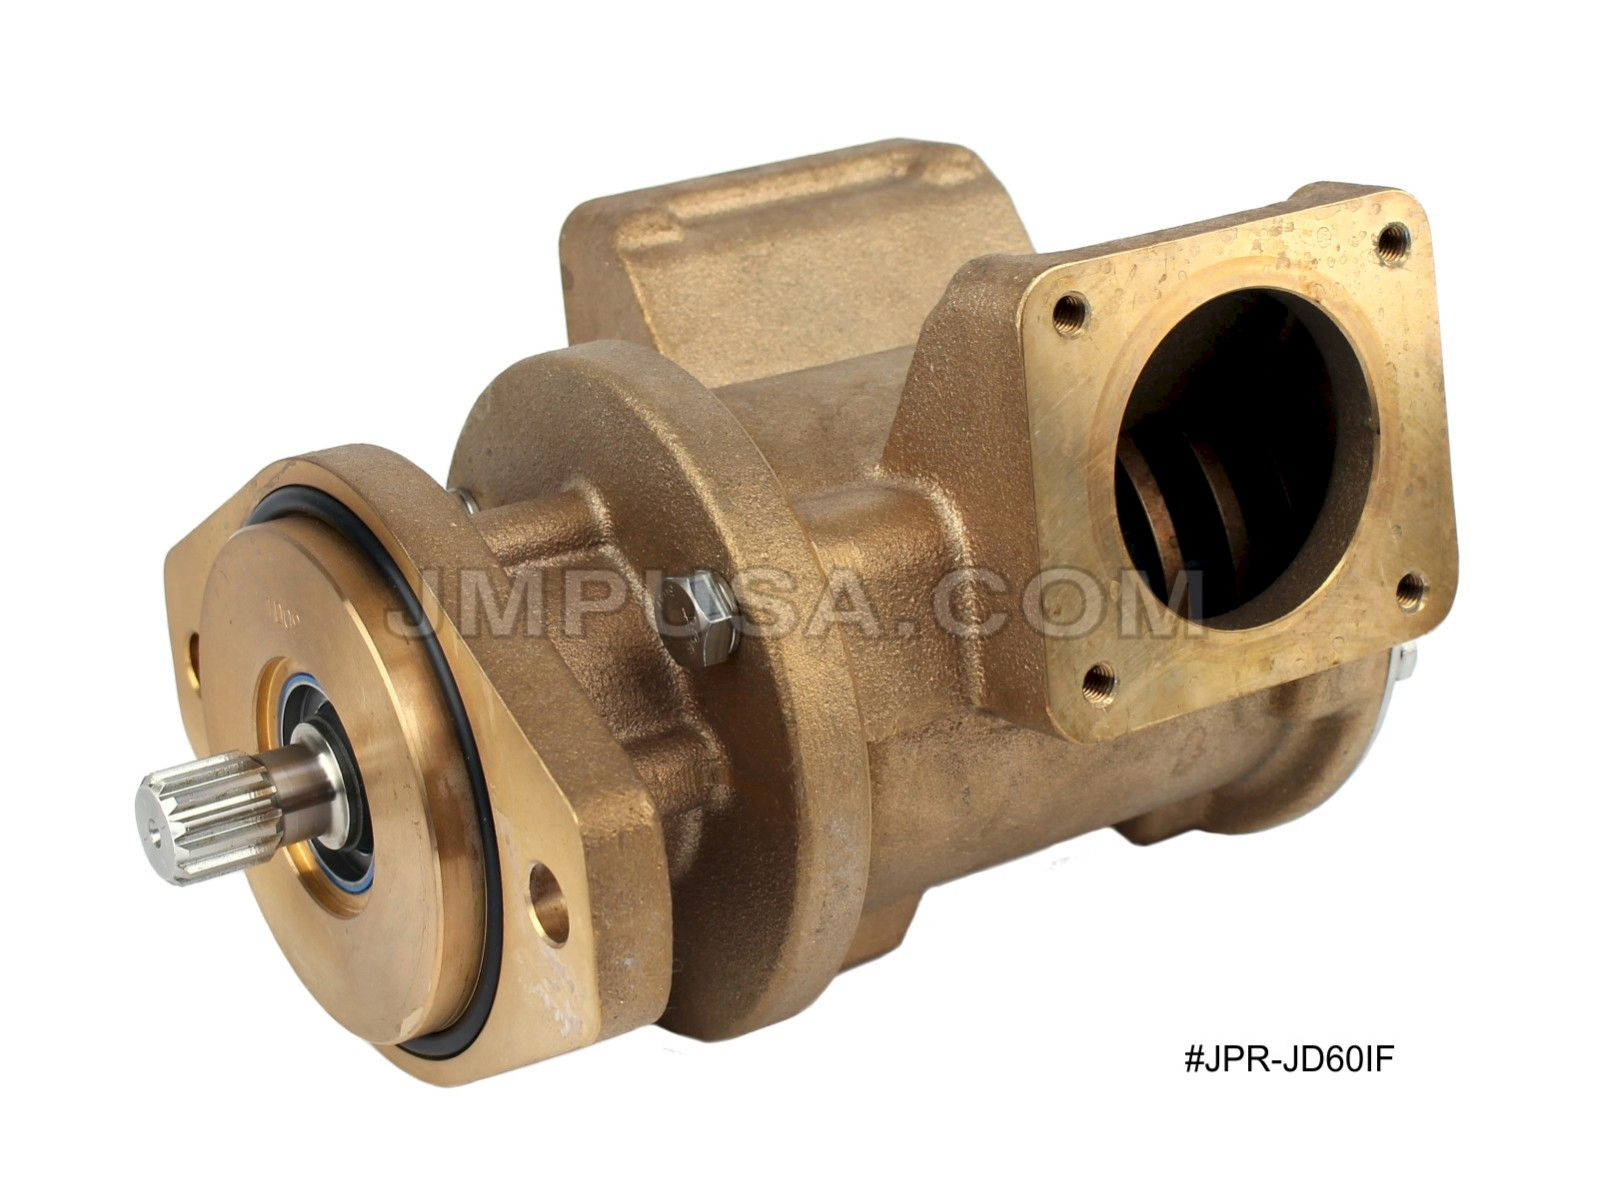 John Deere Seawater Pump RE530872 Sherwood G1816X Replacement JPR-JD60IF